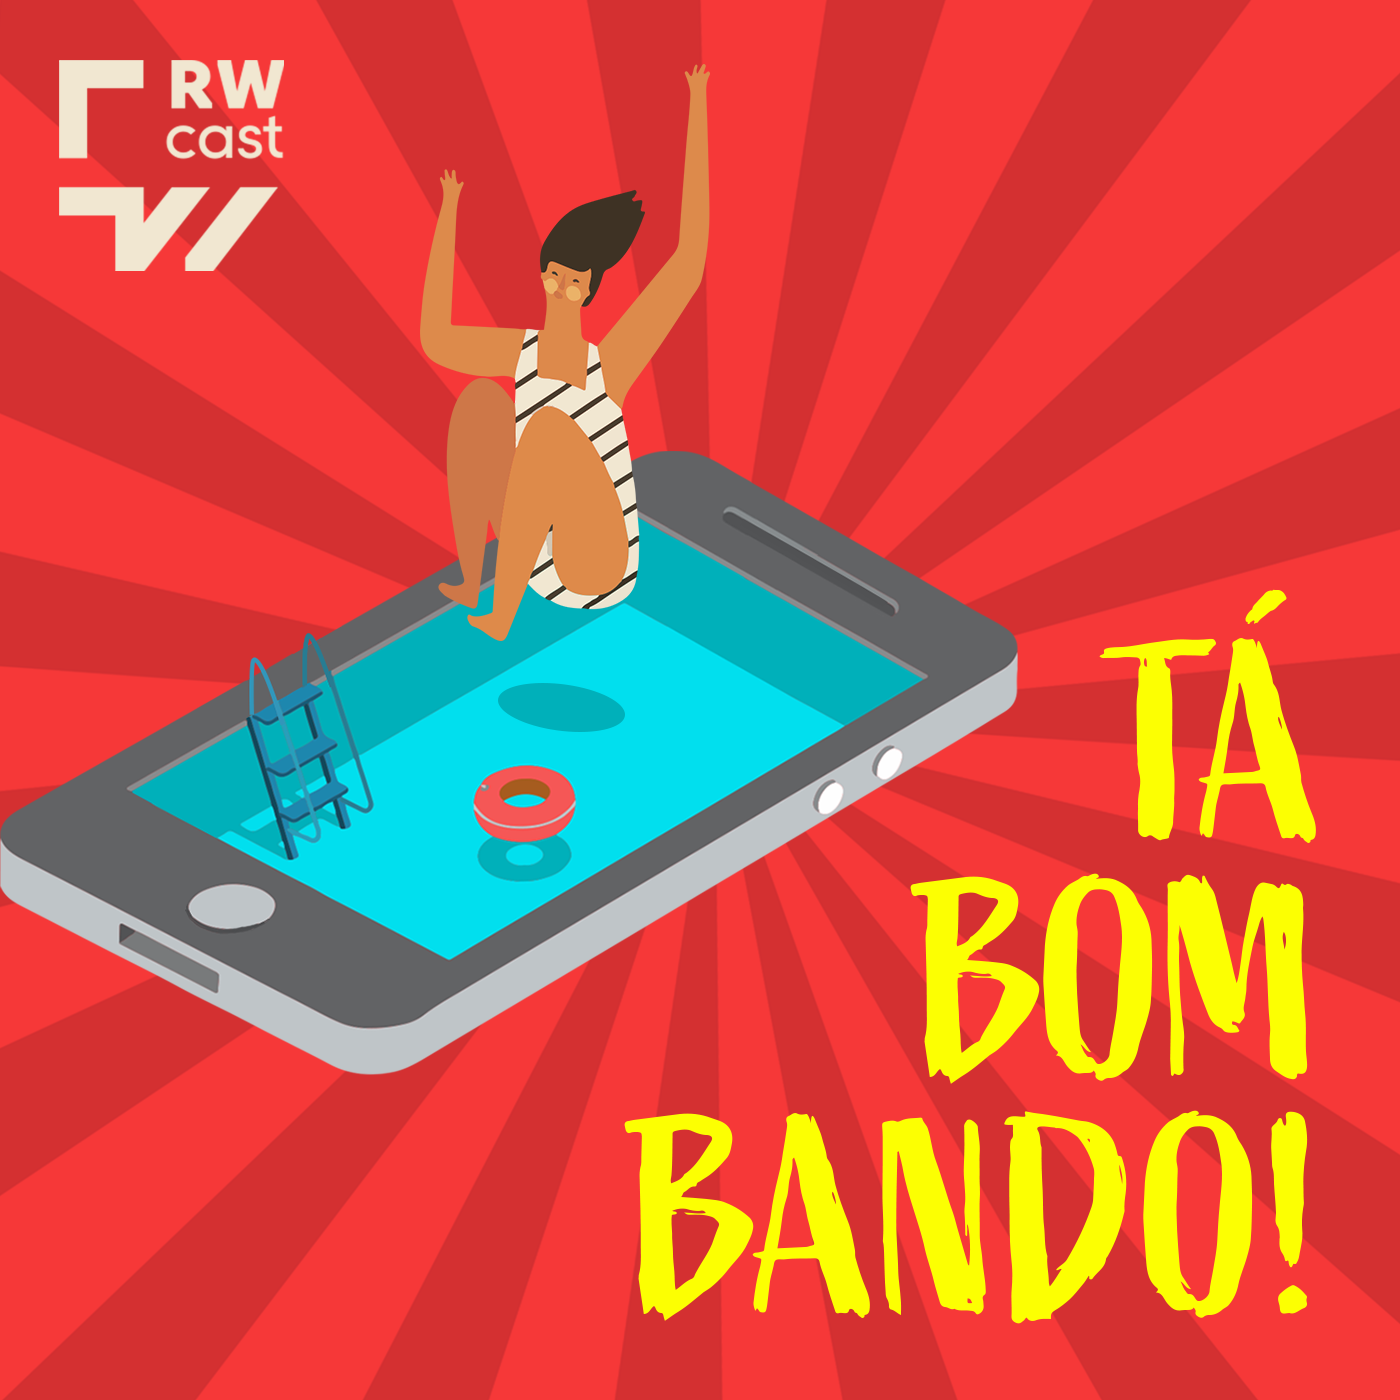 Retrospectiva do Spotify, eliminação do Flamengo e Elliot Page dominam a internet